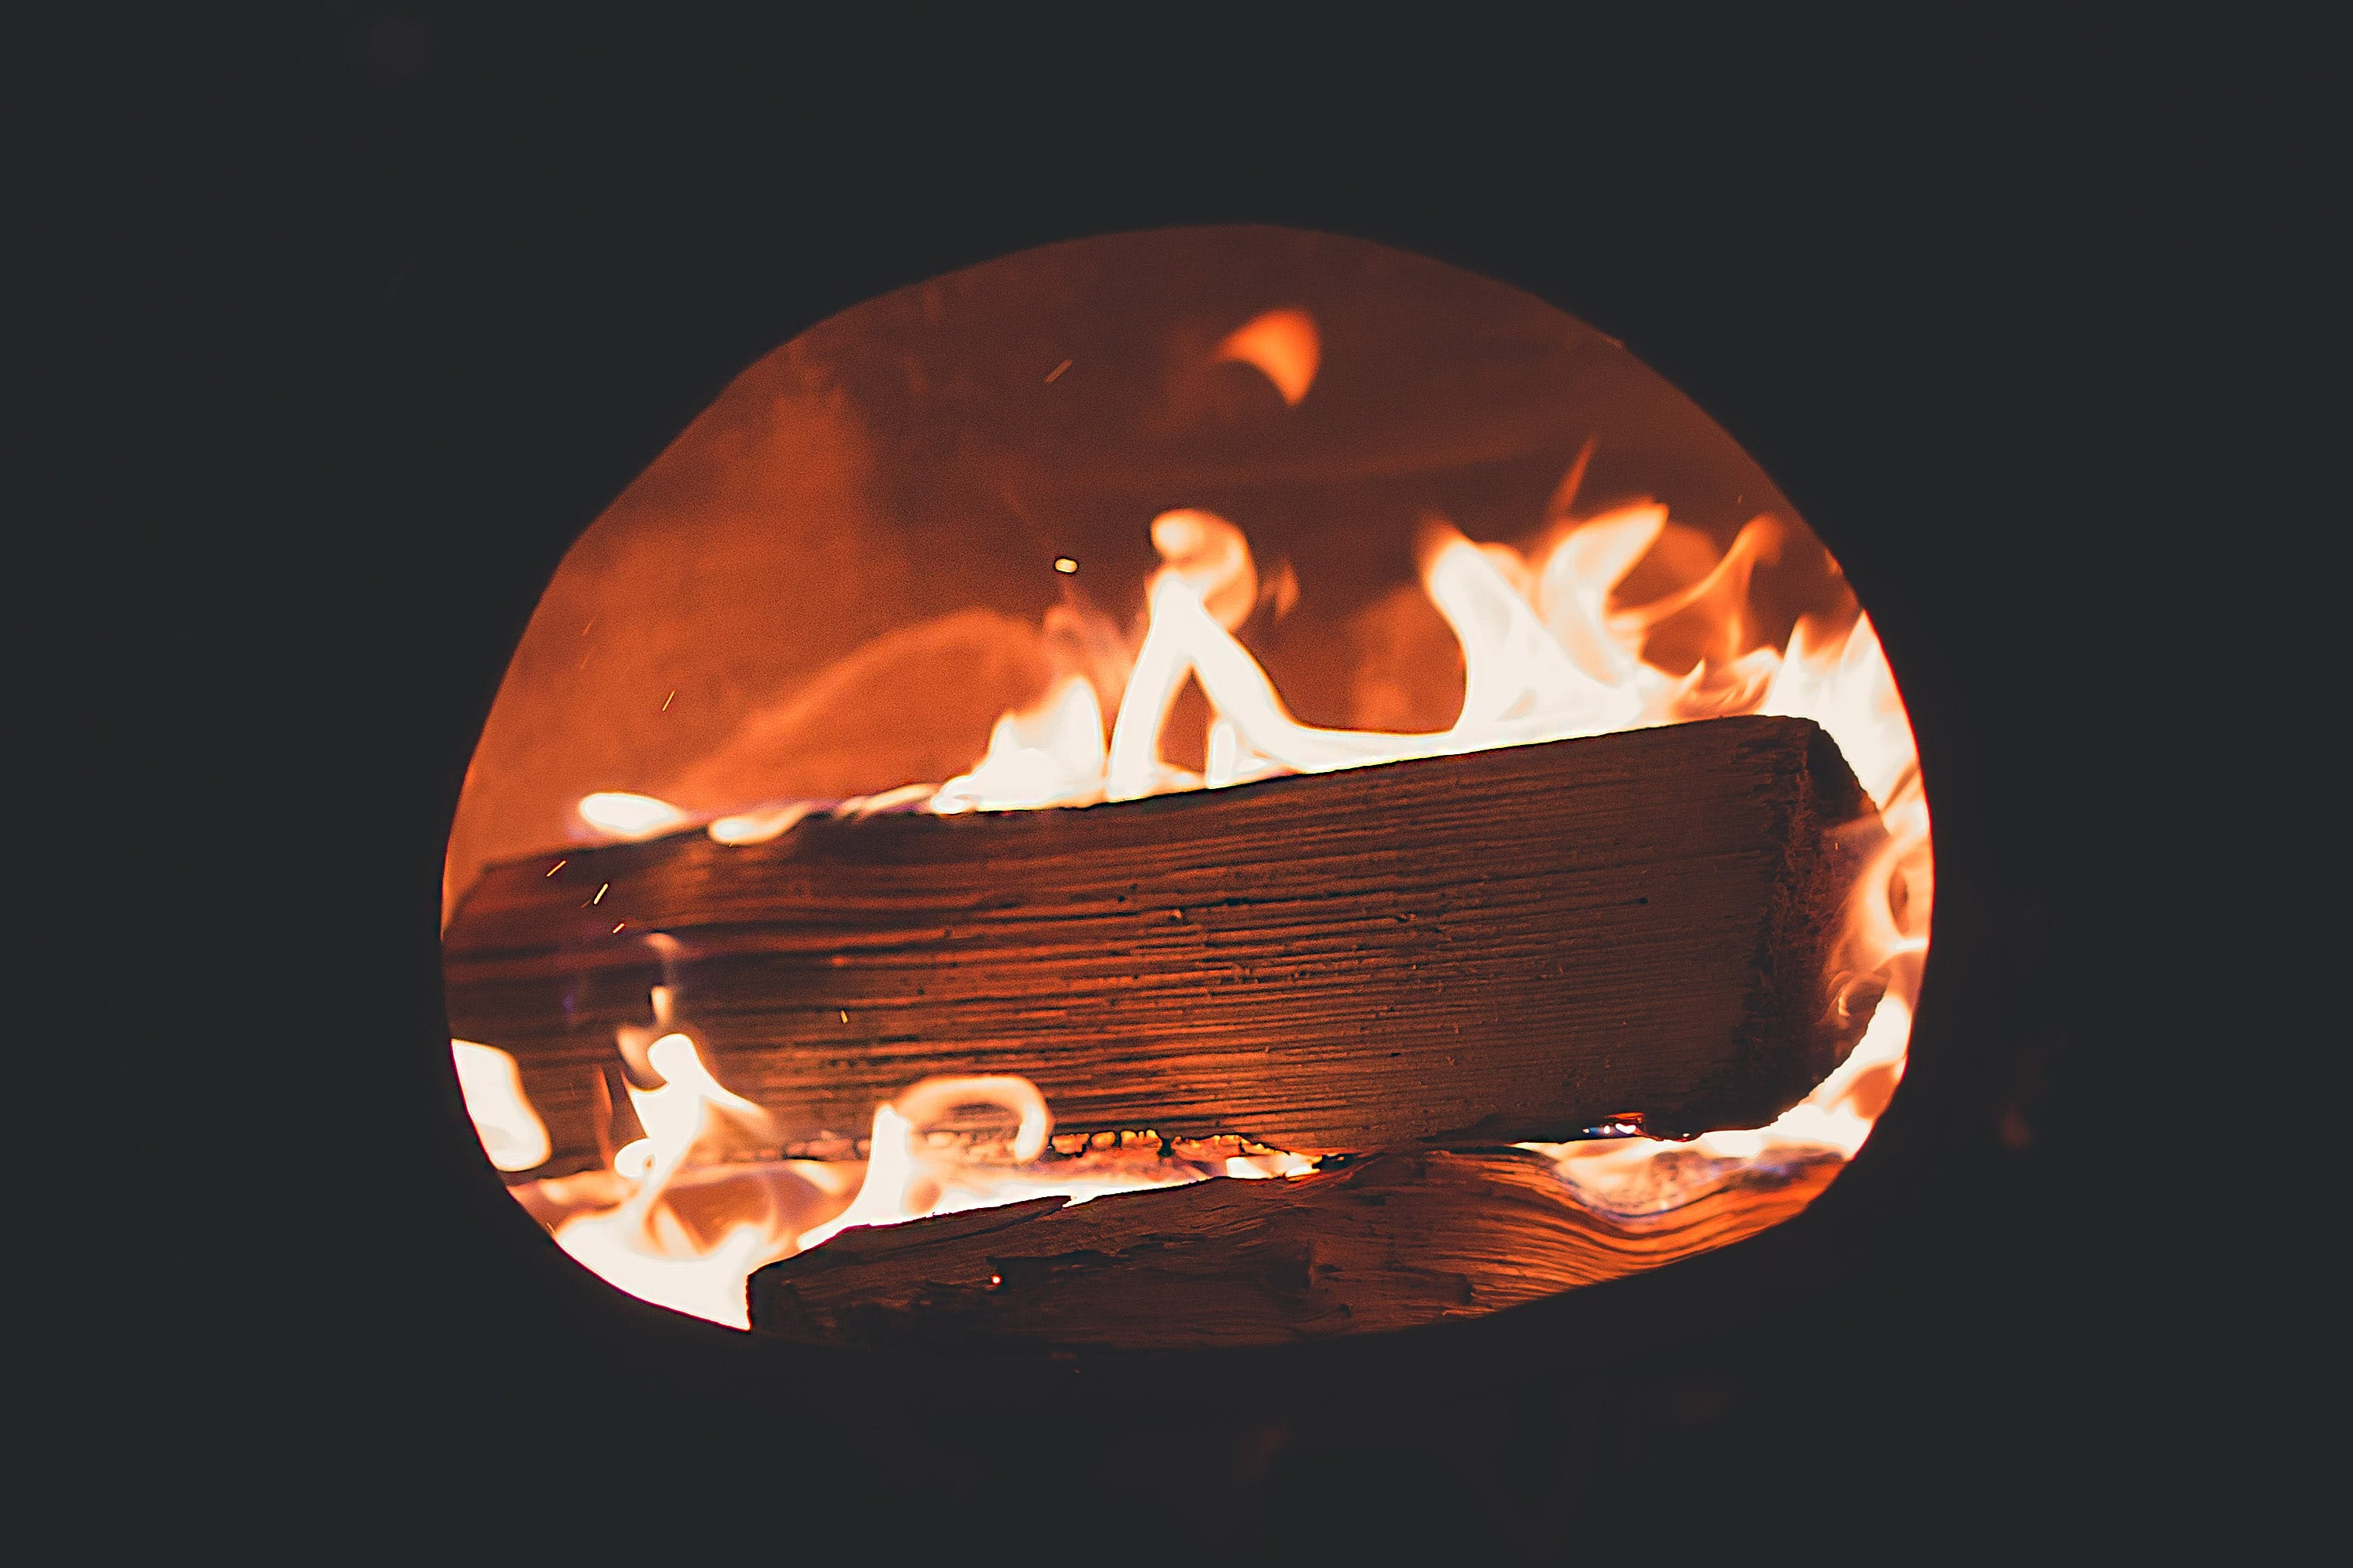 Close-up Photo of Burning Wood in Fireplace